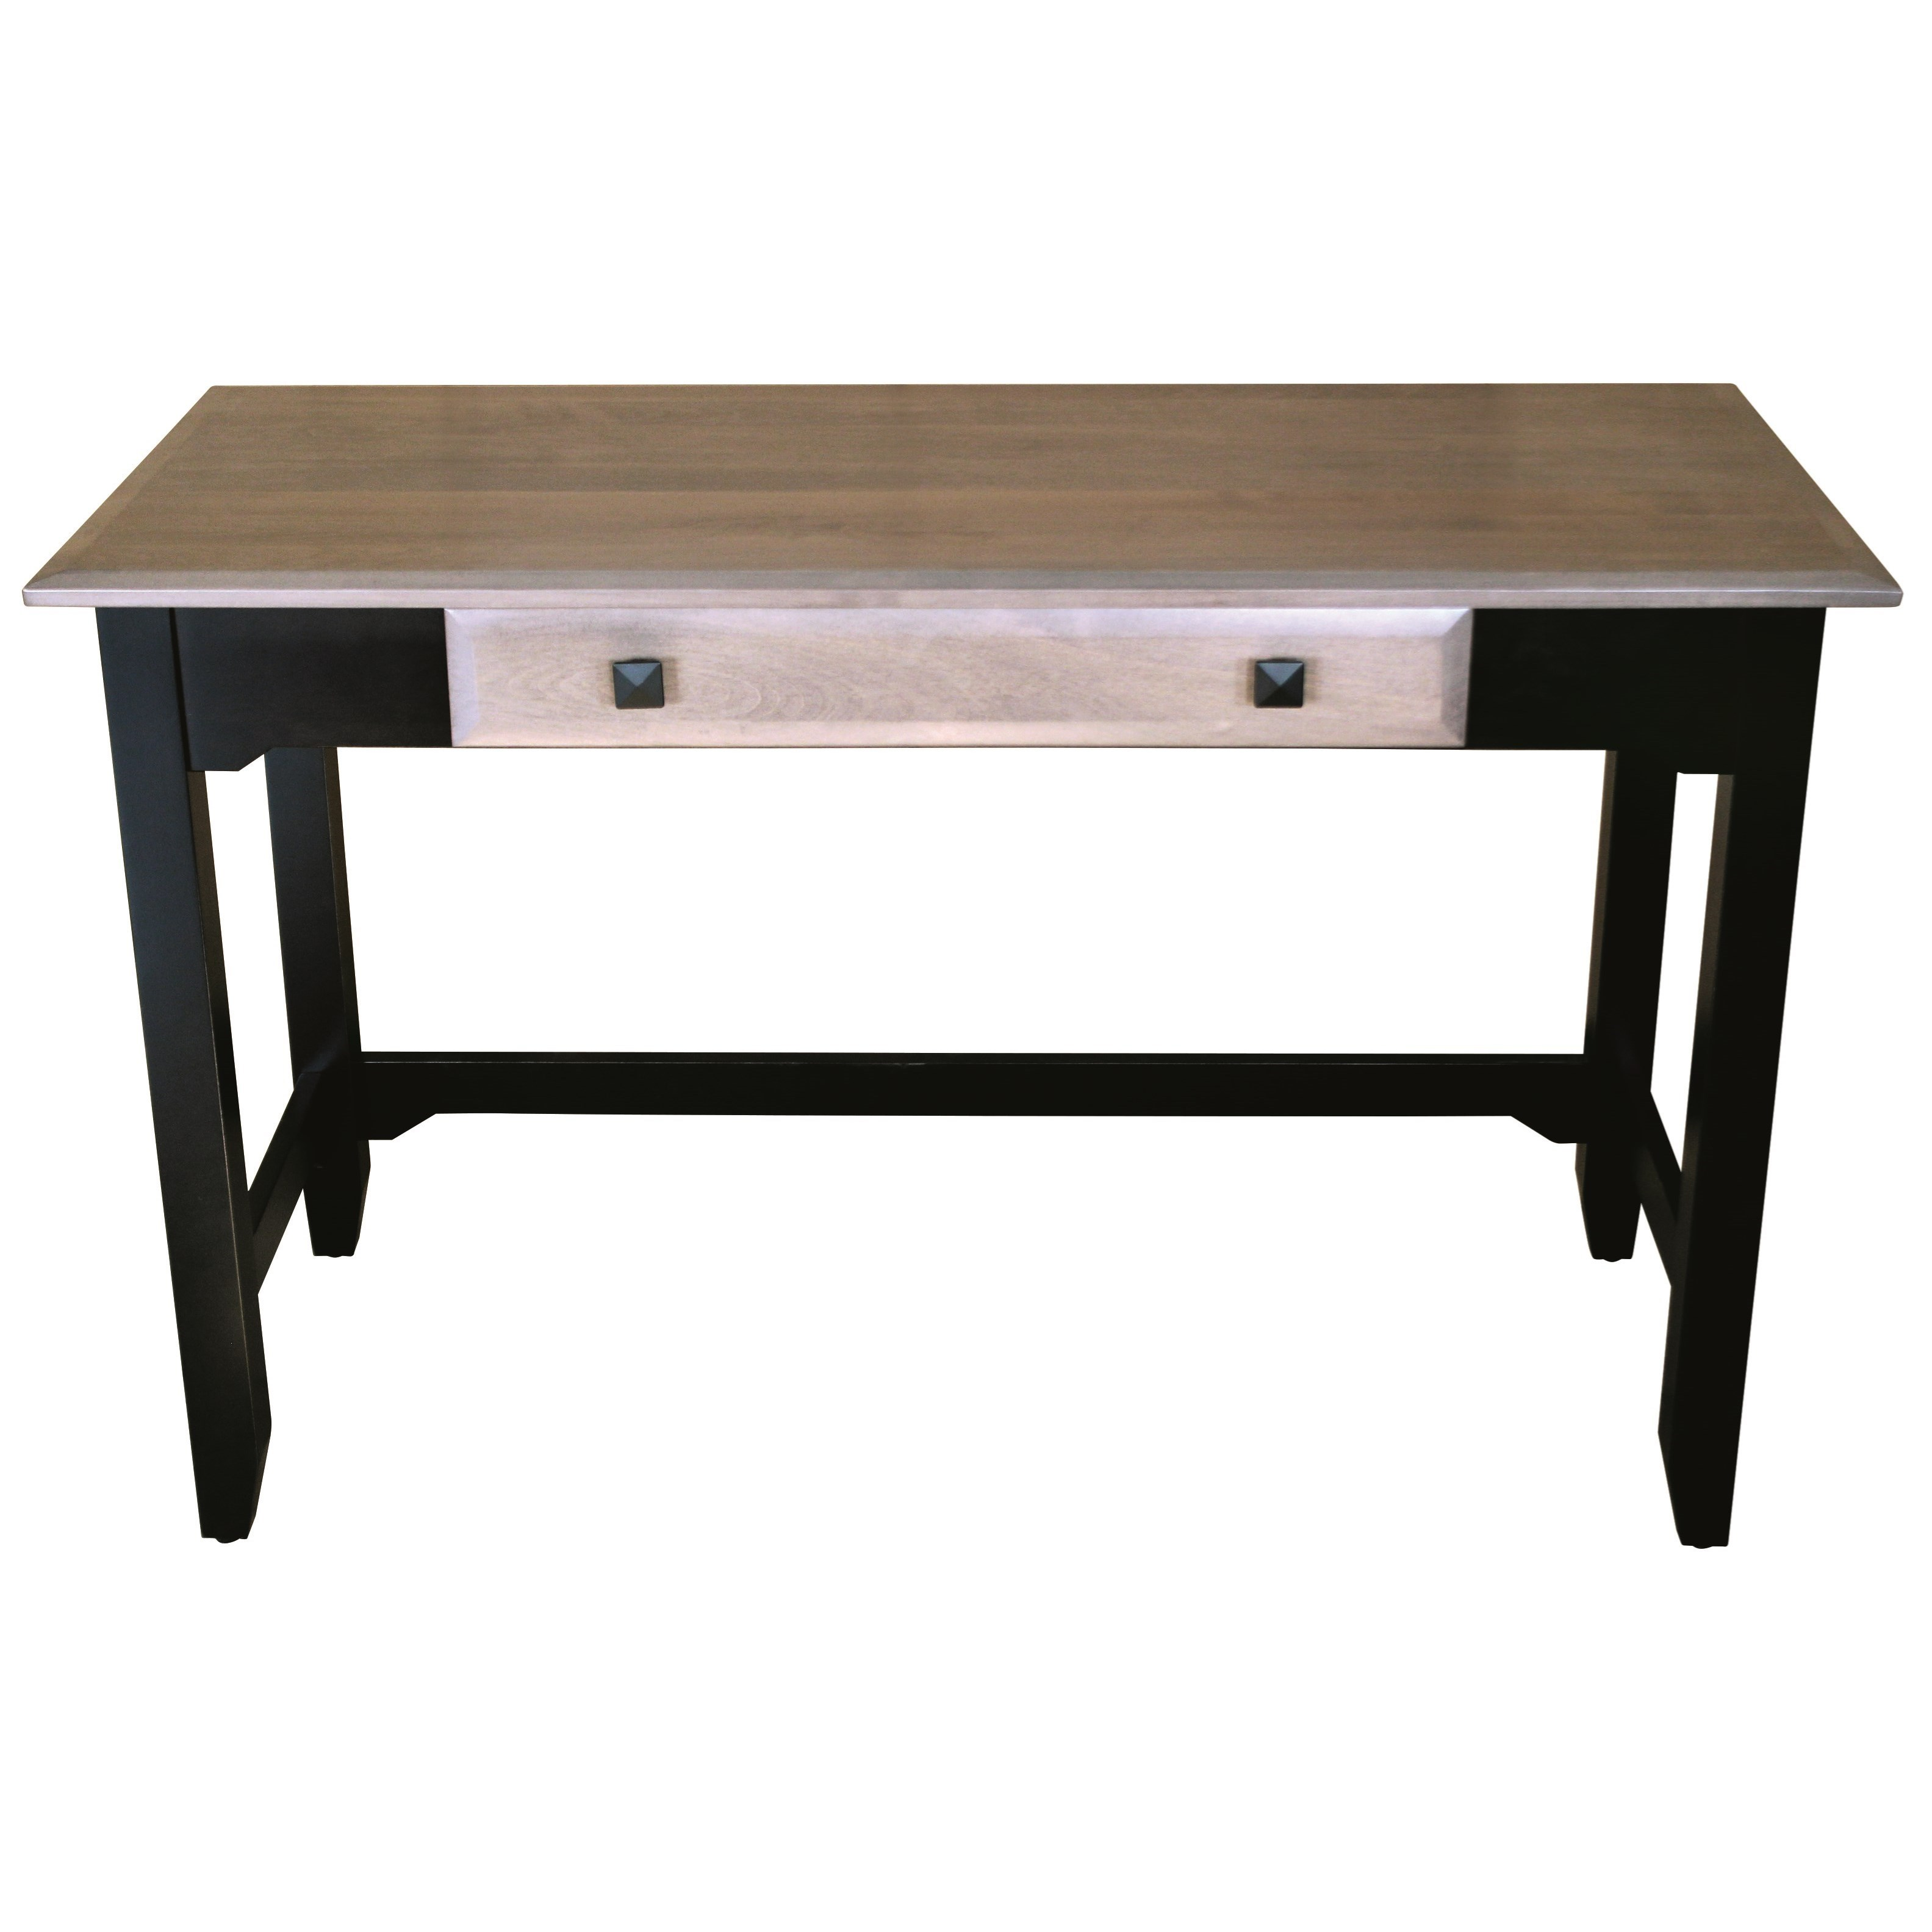 Iris Table Desk by Ashery Woodworking at Saugerties Furniture Mart